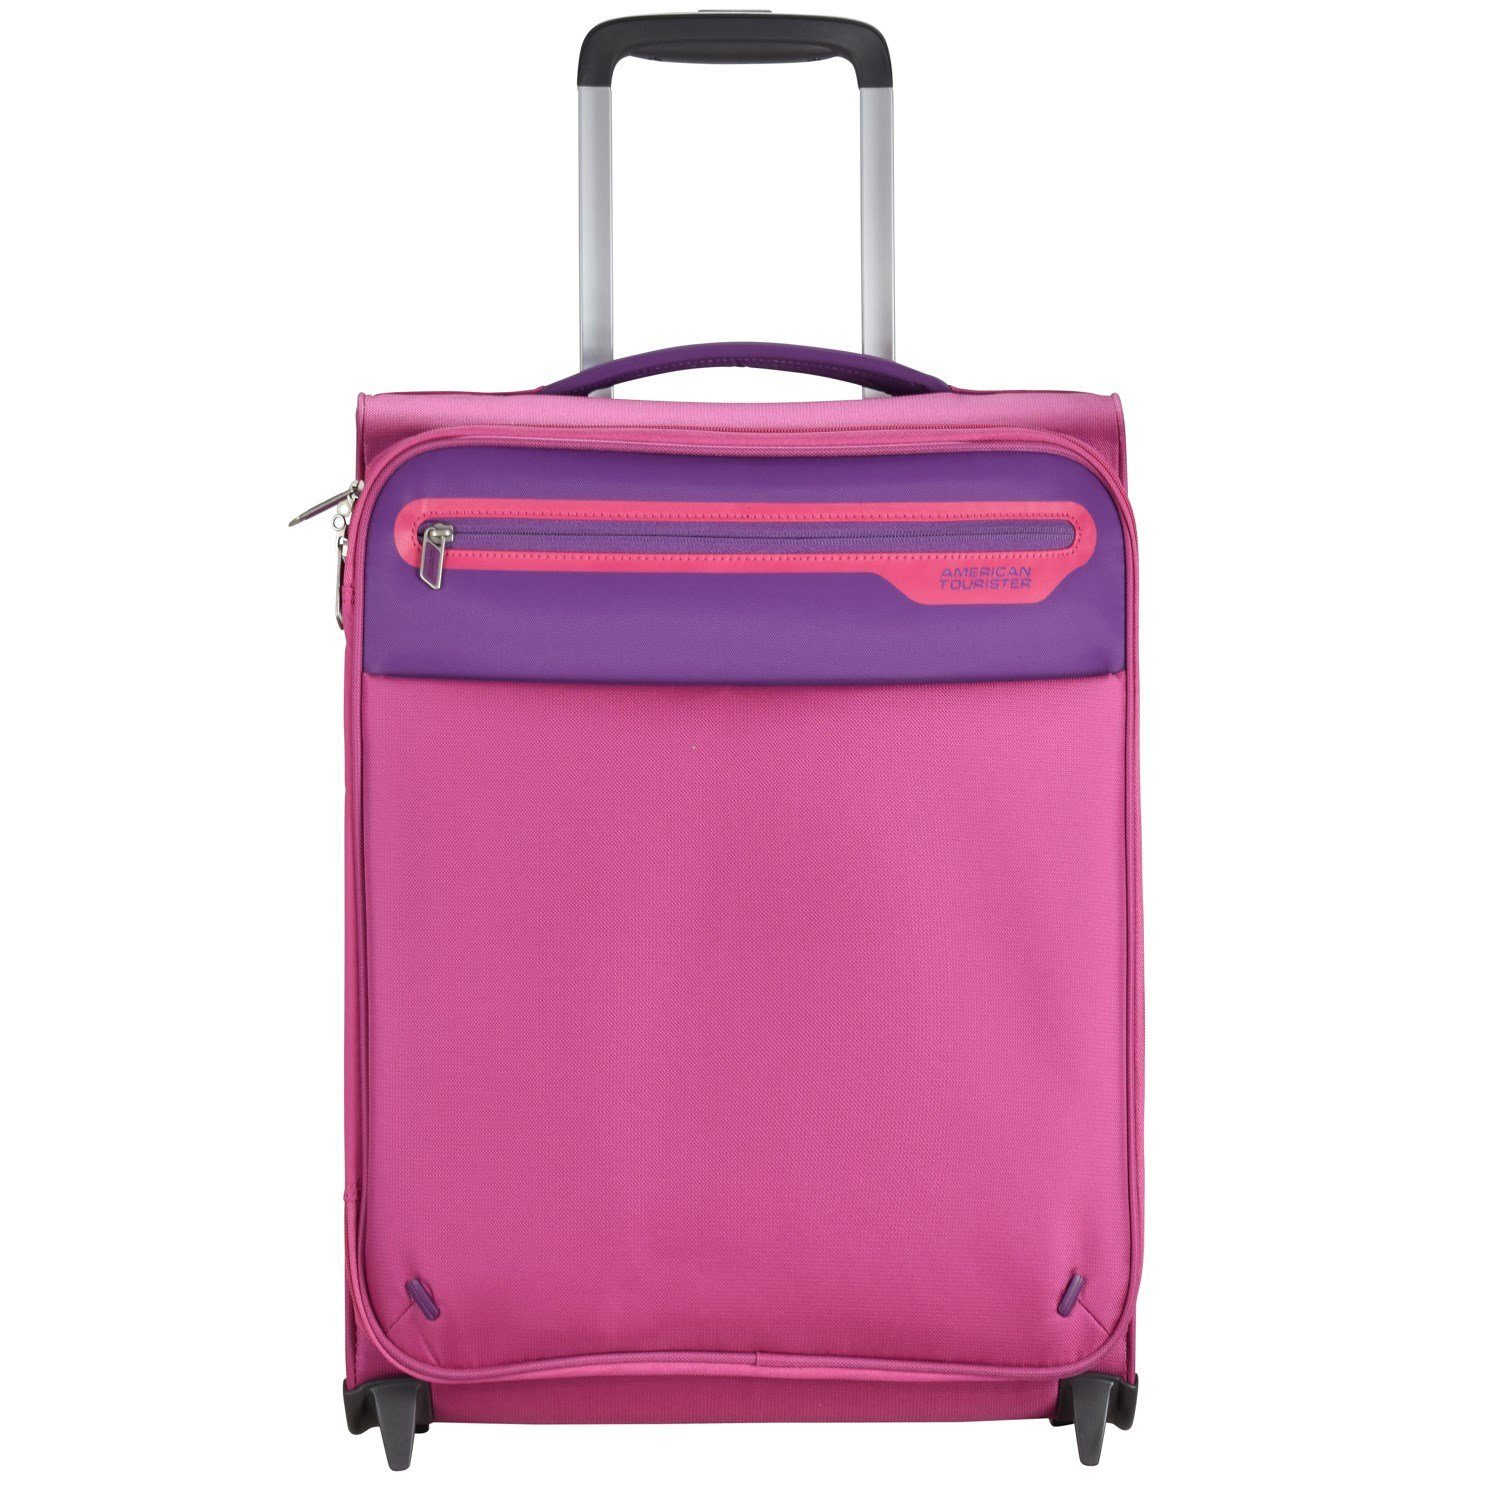 American Tourister Lightway Upright 2-Rollen Kabinentrolley 55 cm